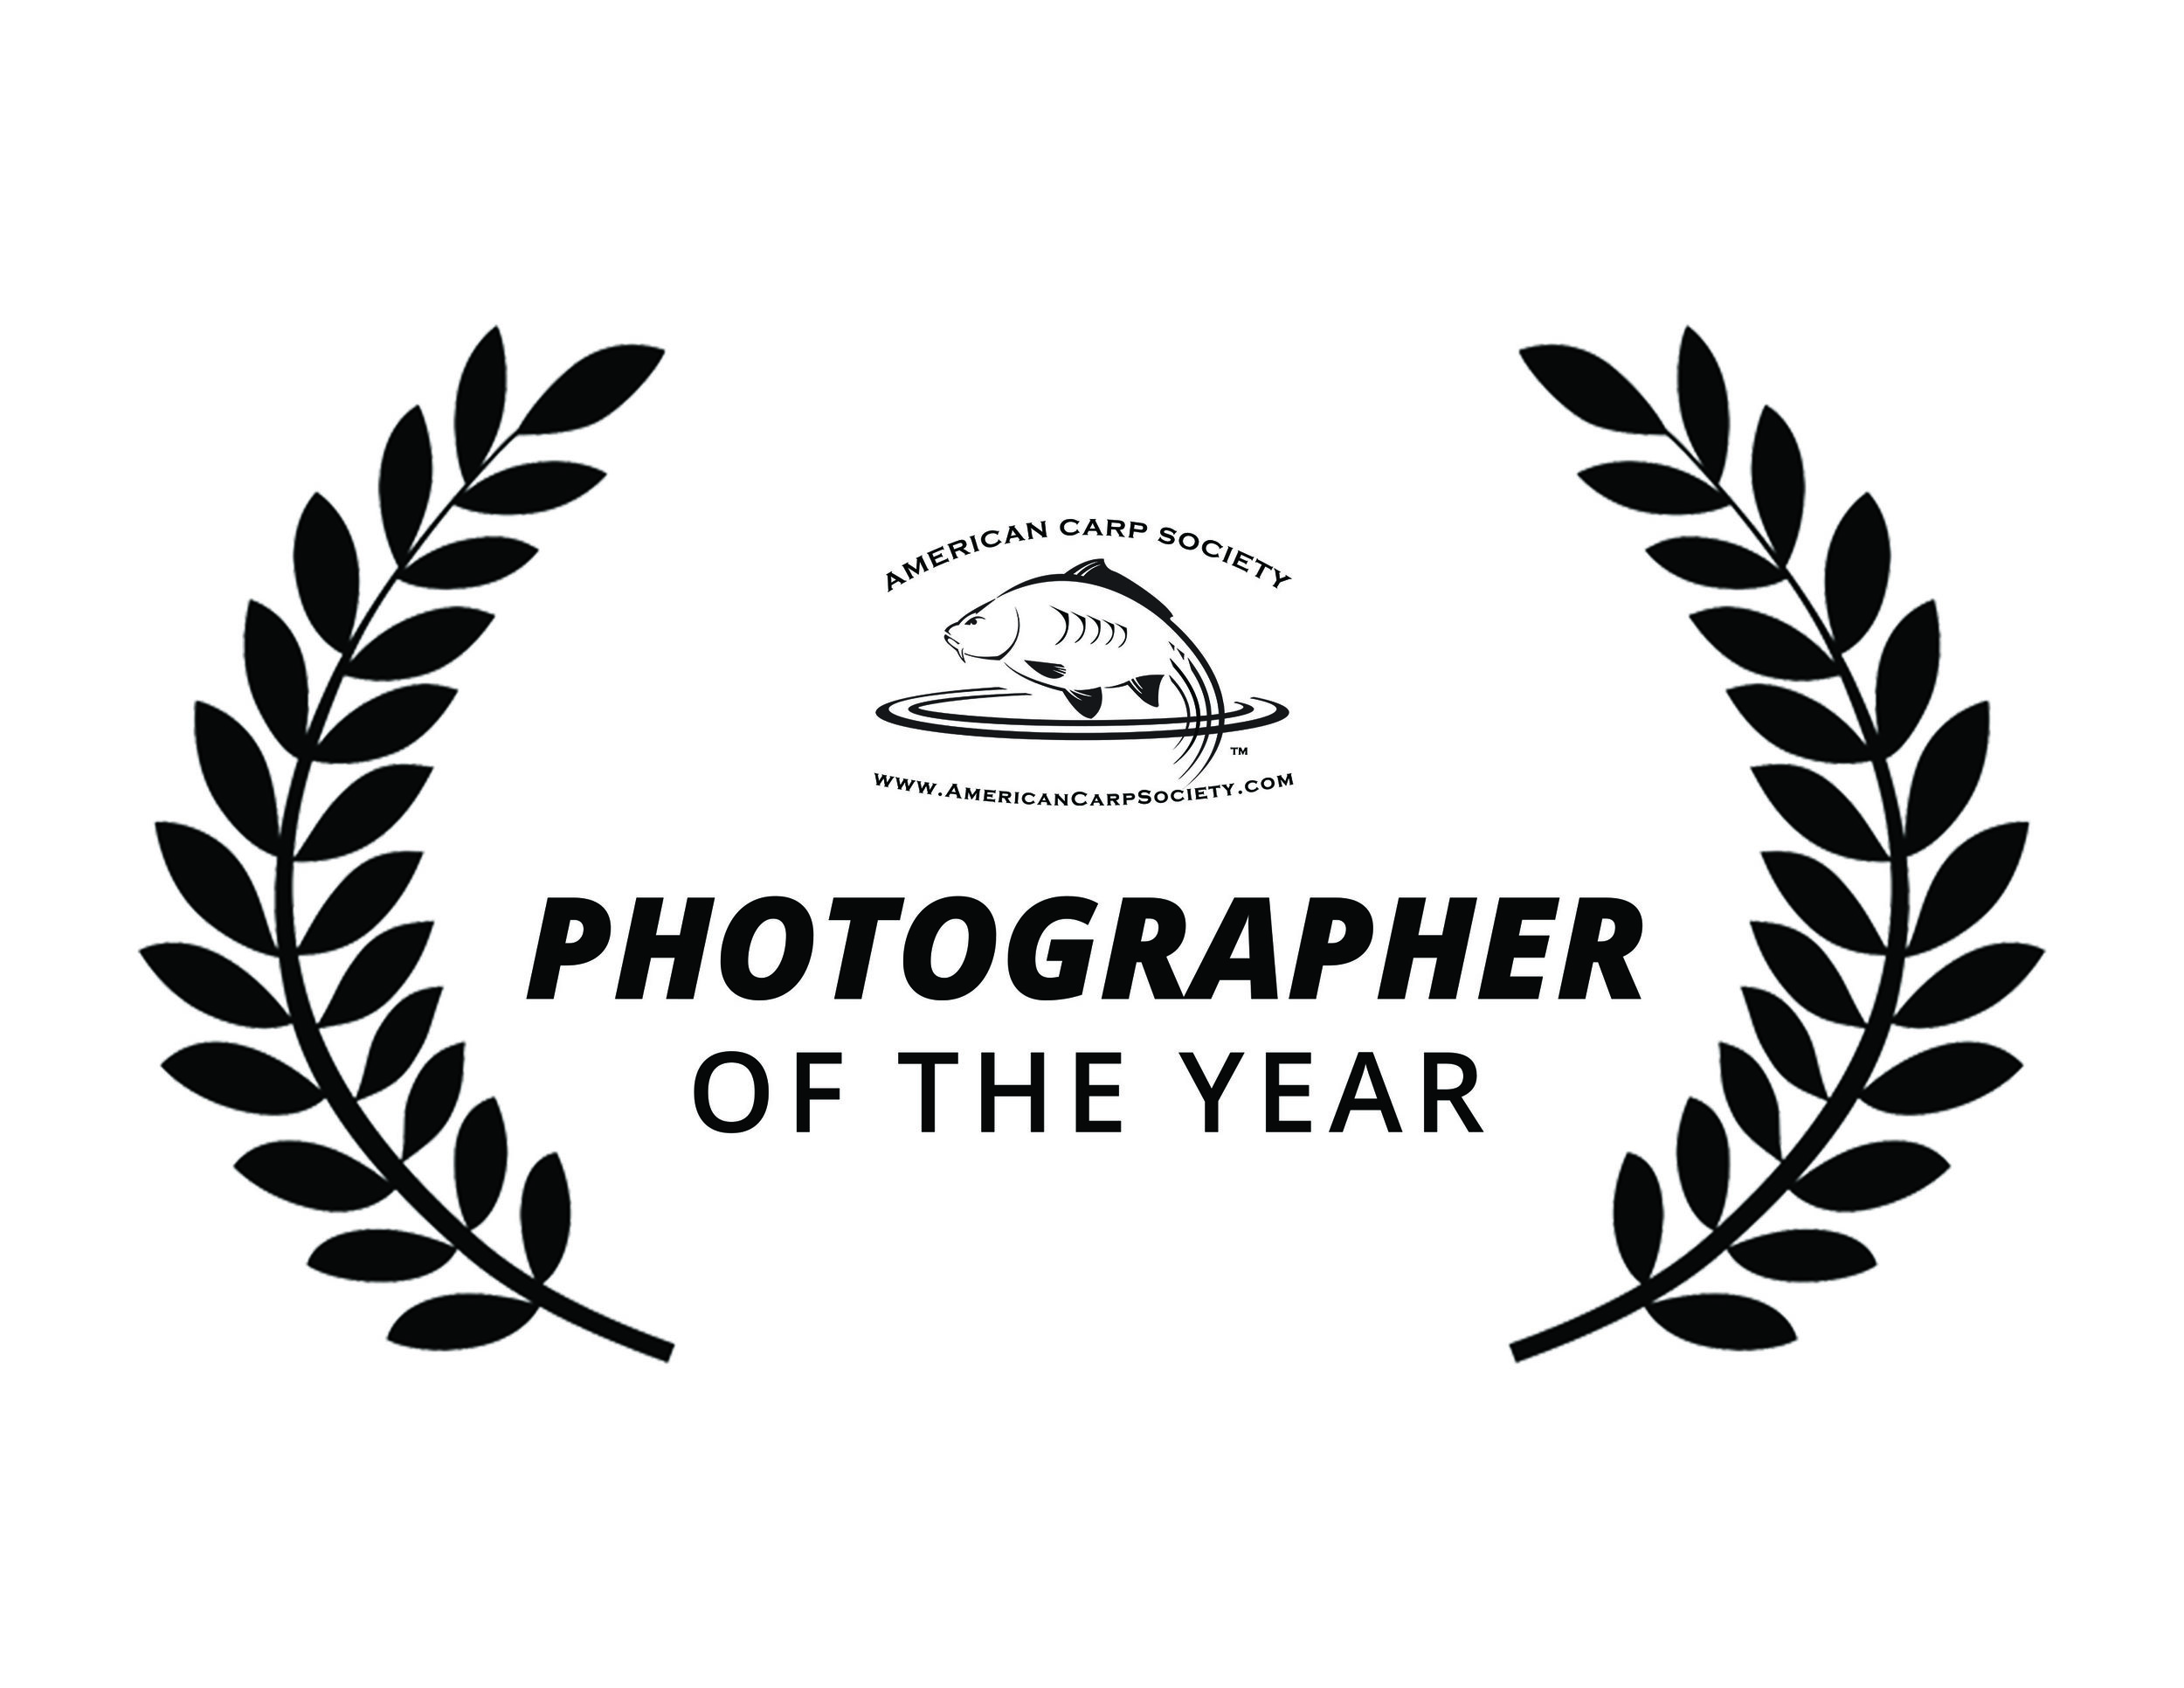 2. Photographer of the Year Award - The documentation of our beloved fish is one of the strongest messages that we can send to others by raising the profile, and perceived value, of the fish in a well documented photograph that captures a moment in time. This will be voted on by your peers, The American Carp Society membership.